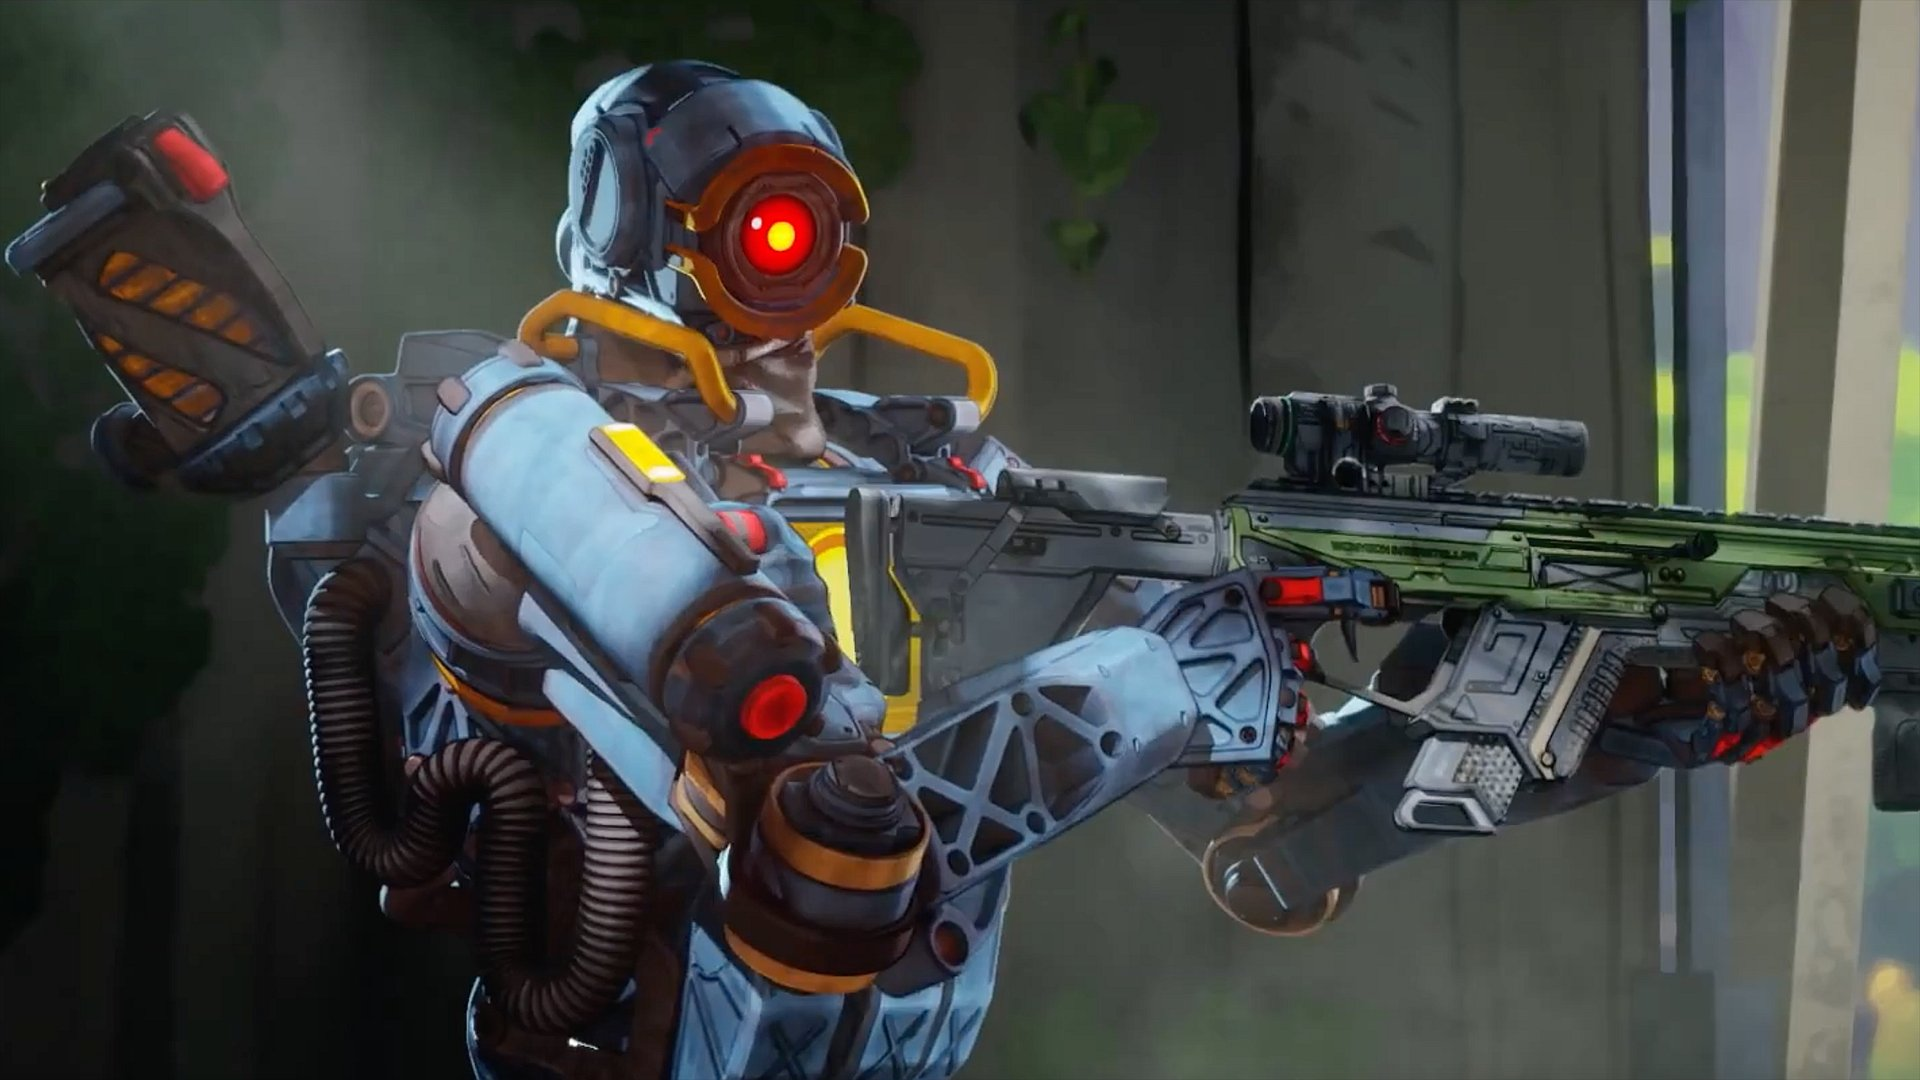 Apex Legends update 1.1 causing player progress wipe - pathfinder using a sniper rifle